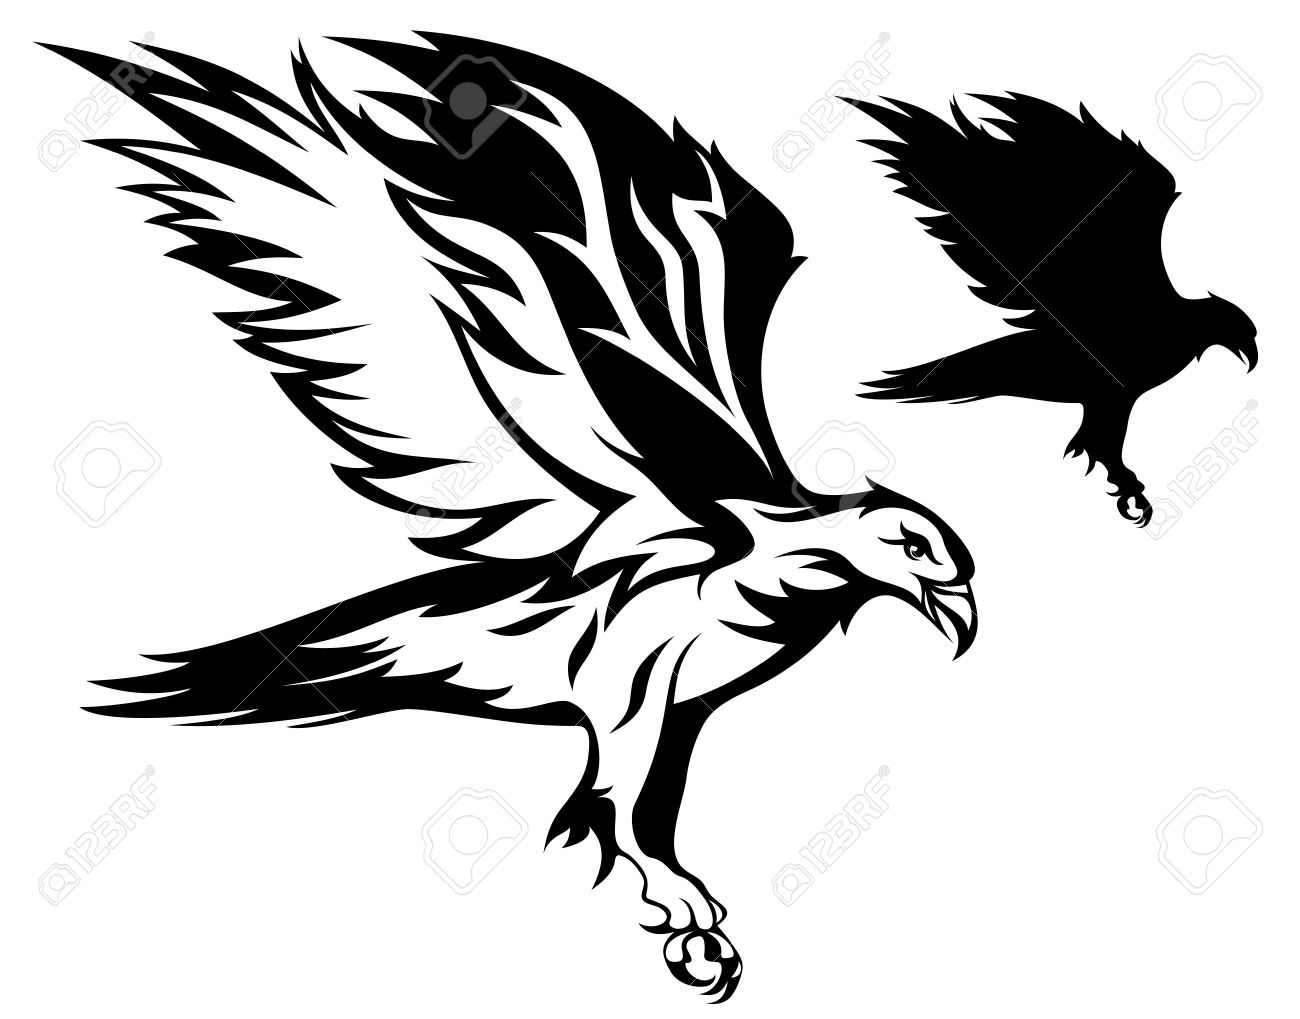 flying eagle vector illustration Stock Vector - 10826131